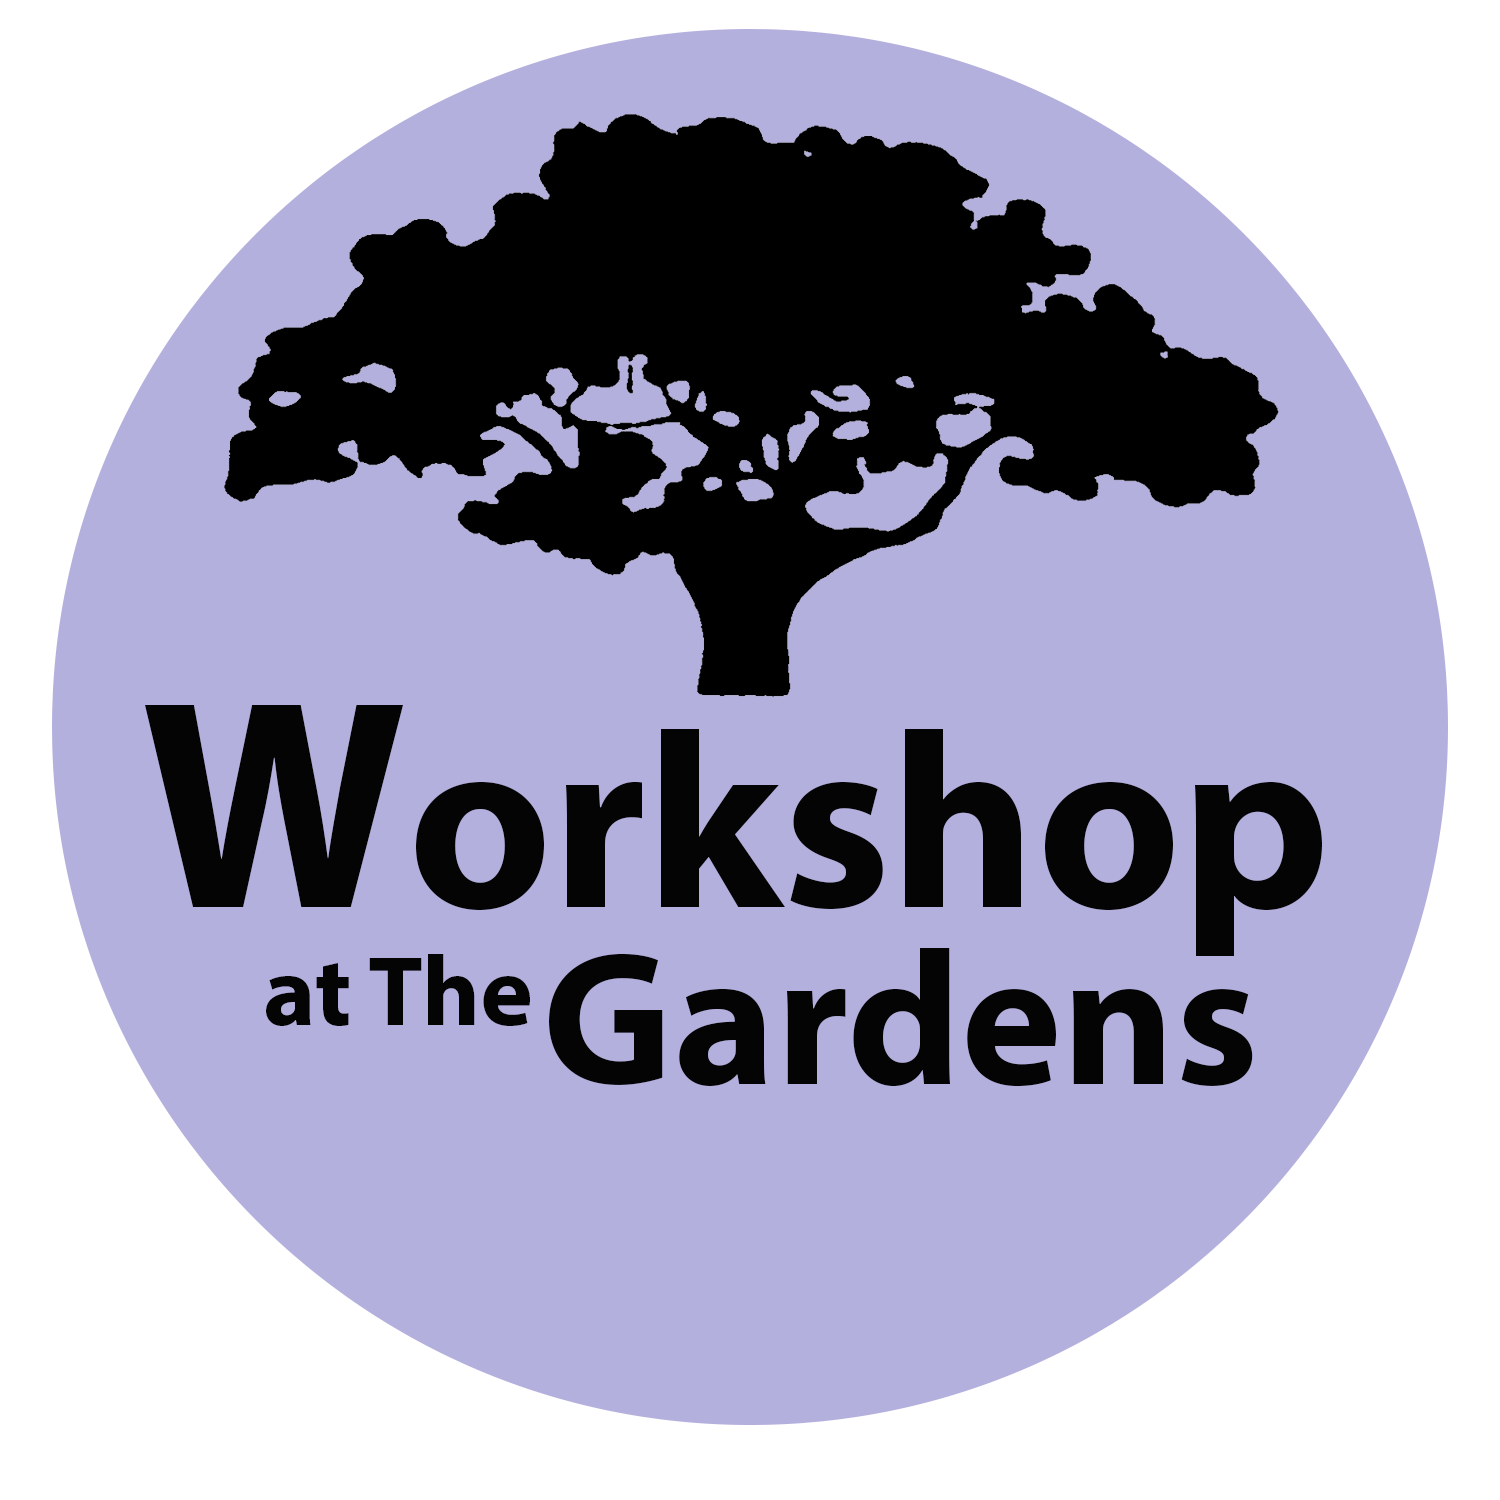 Workshop at The Gardens